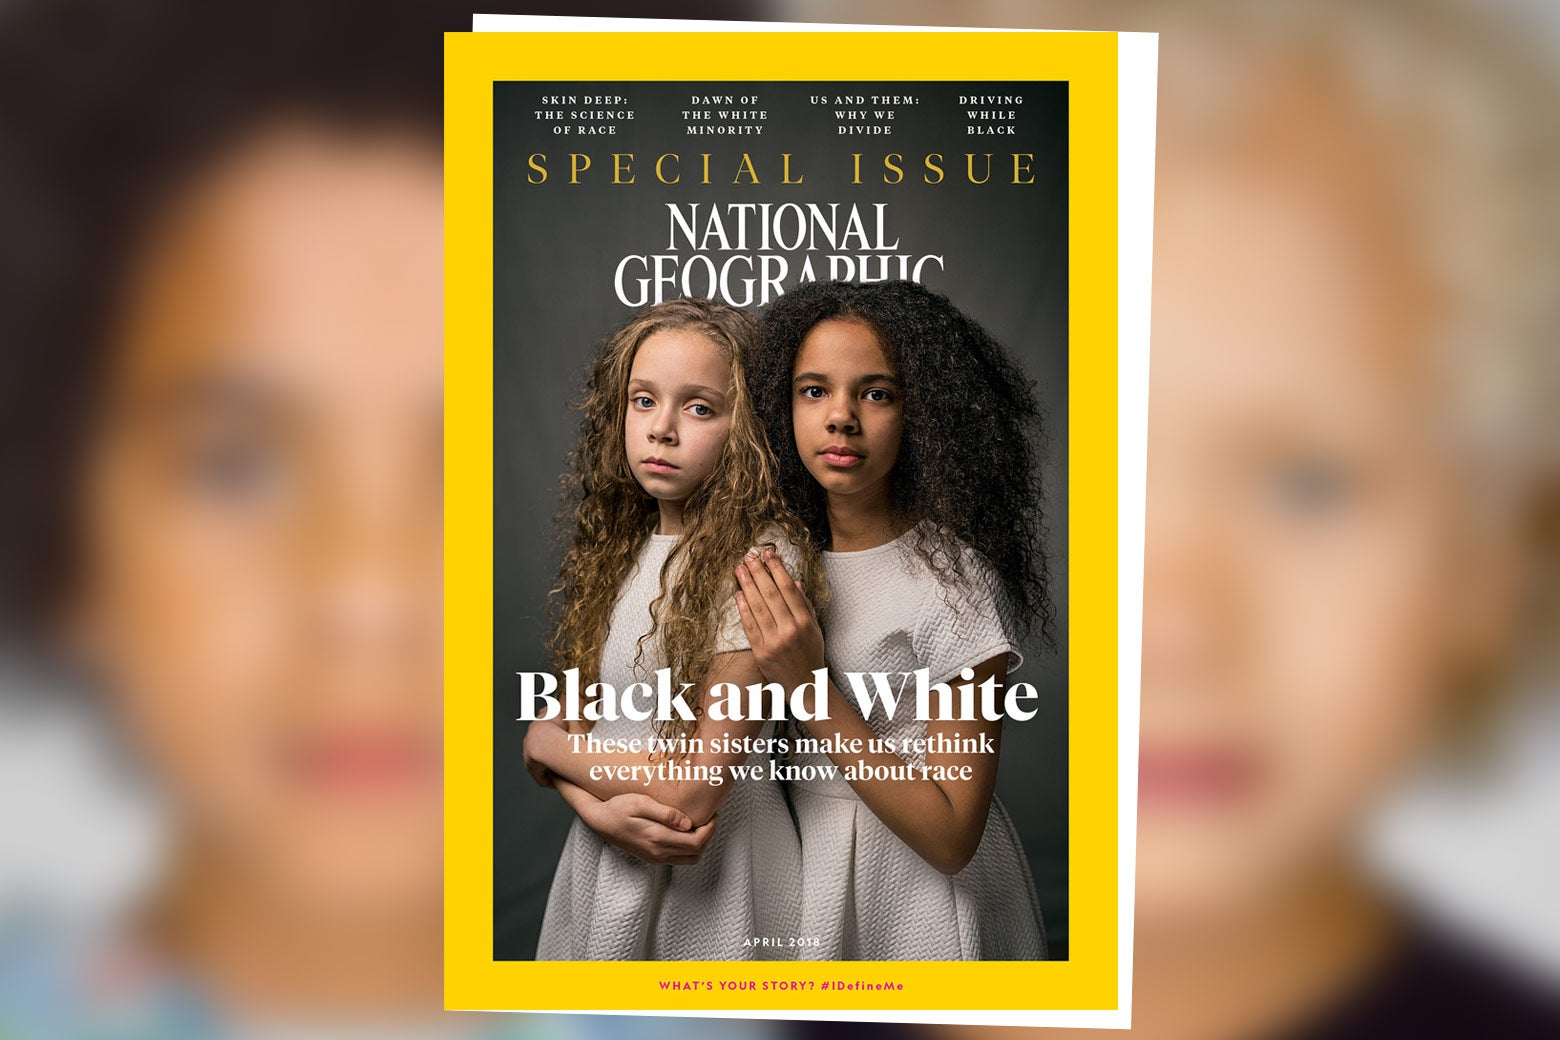 The cover of National Geographic's current special issue about race, featuring biracial twins.